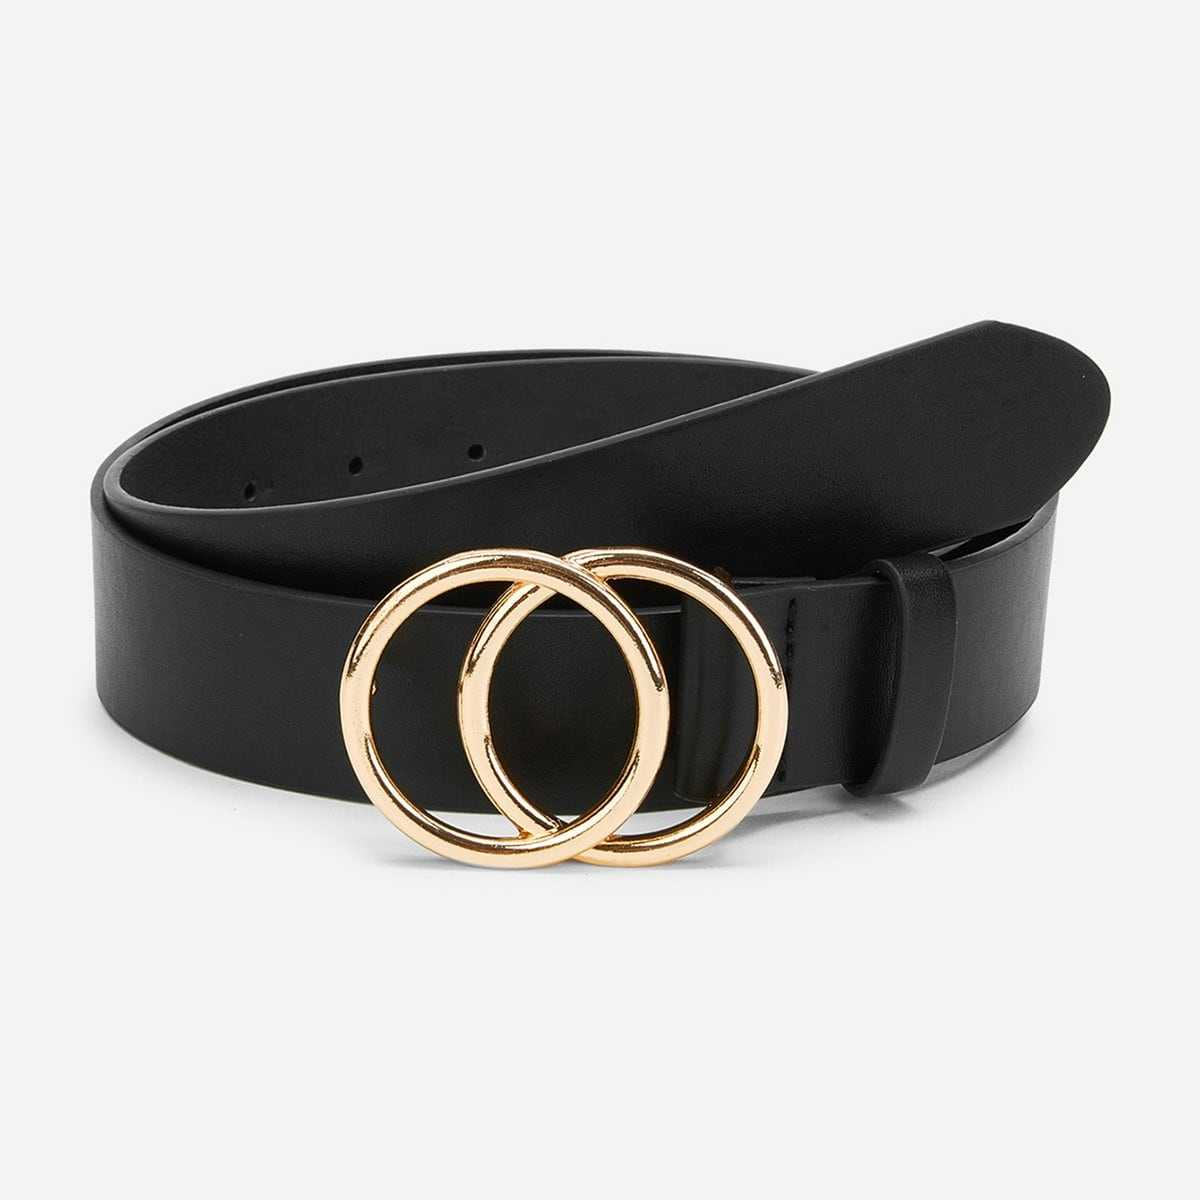 Double Circle Buckle Belt in Black by ROMWE on GOOFASH